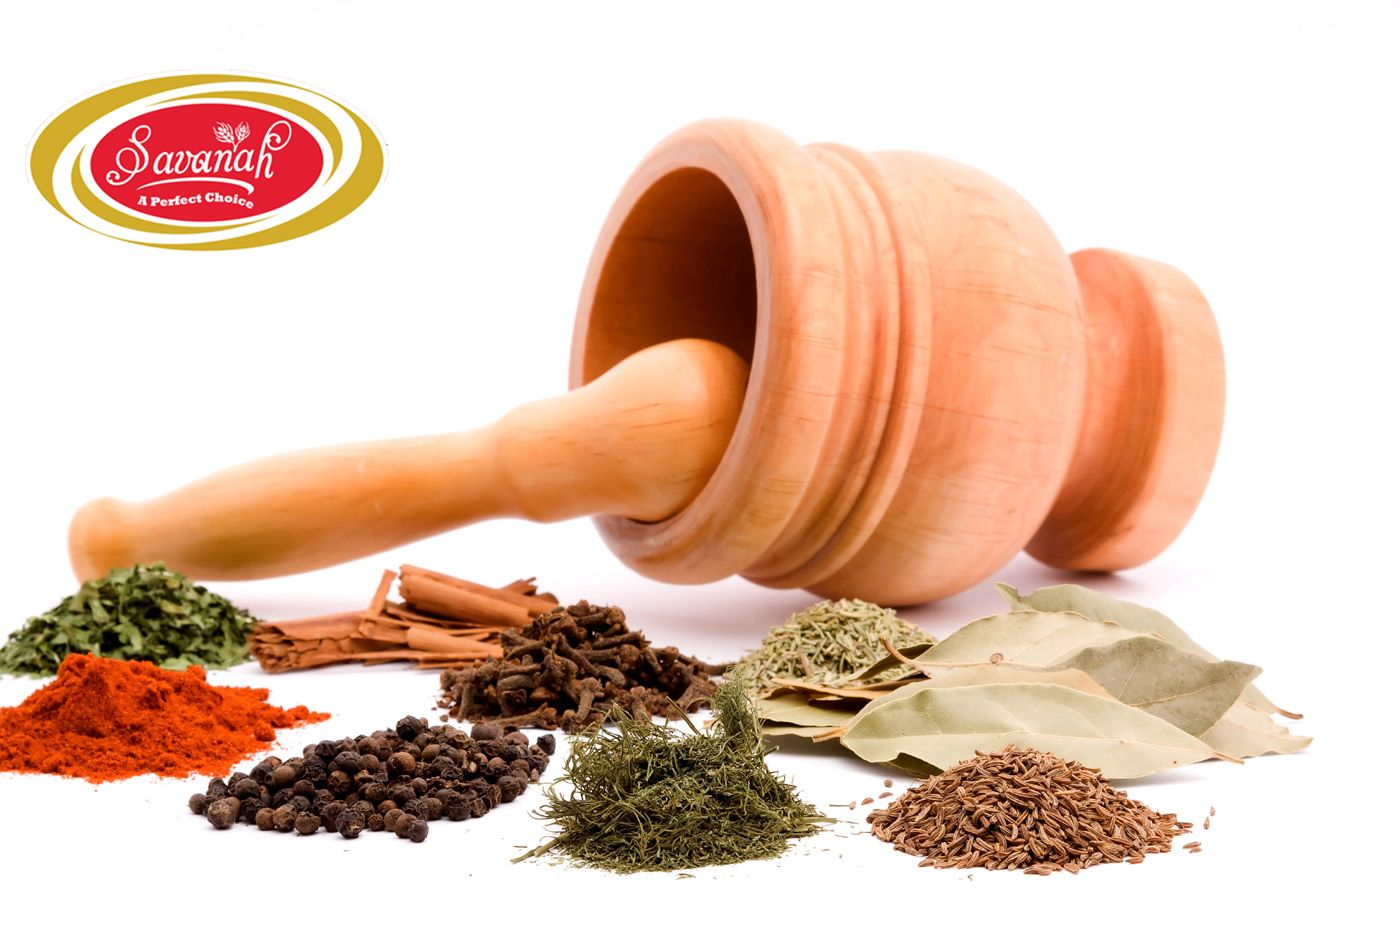 Live the Flavor of Traditional Indian Food Savanah - A